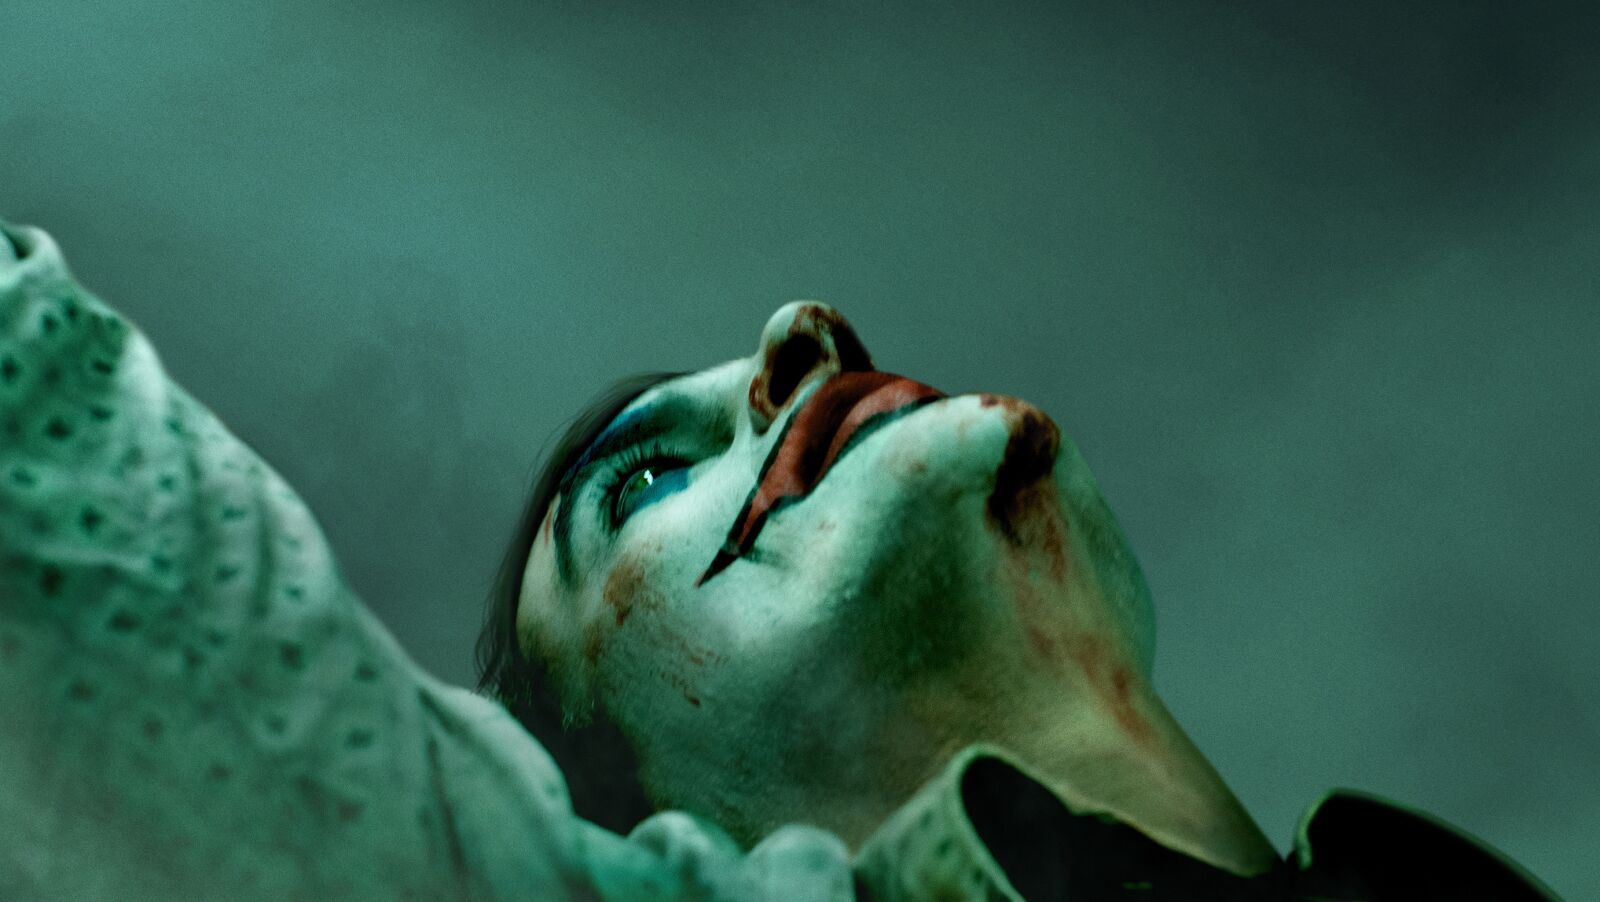 Brush up on the Joker's long history with this video